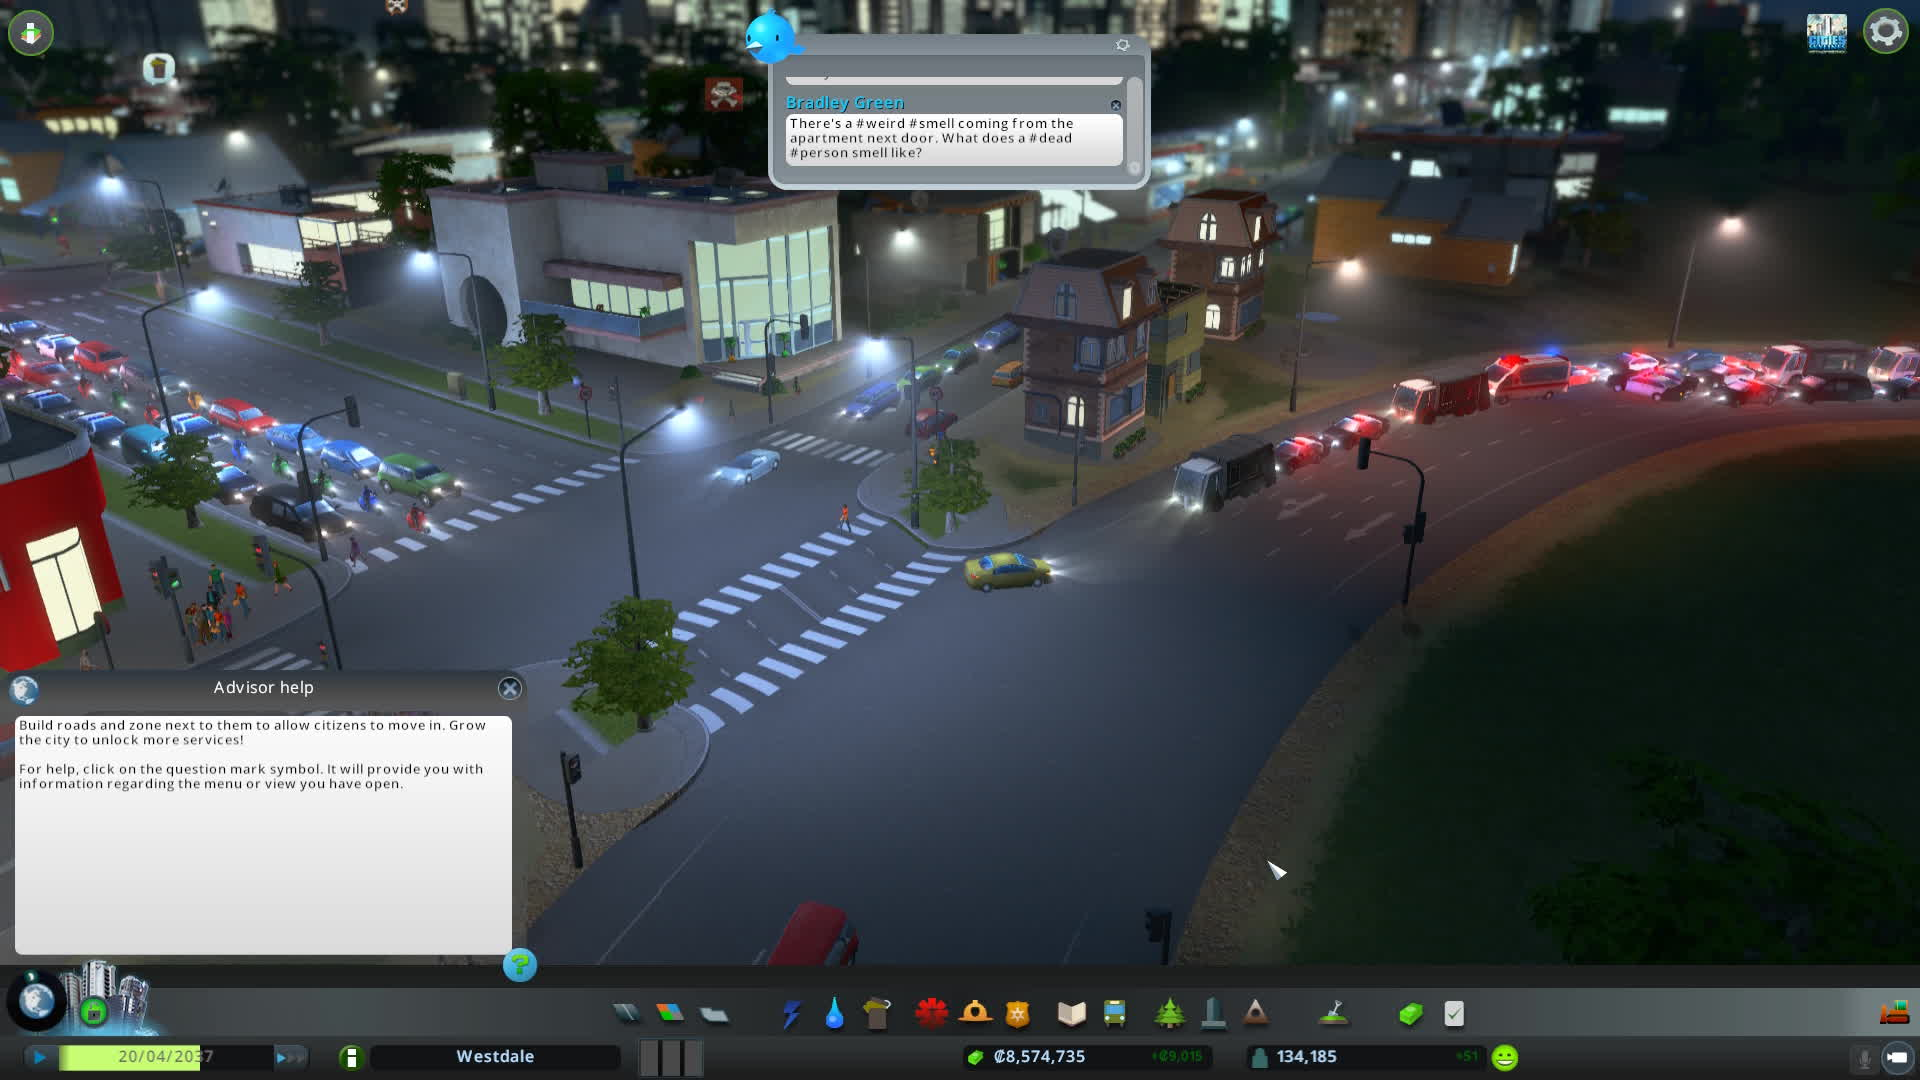 citiesskylines, How Not to Drive GIFs